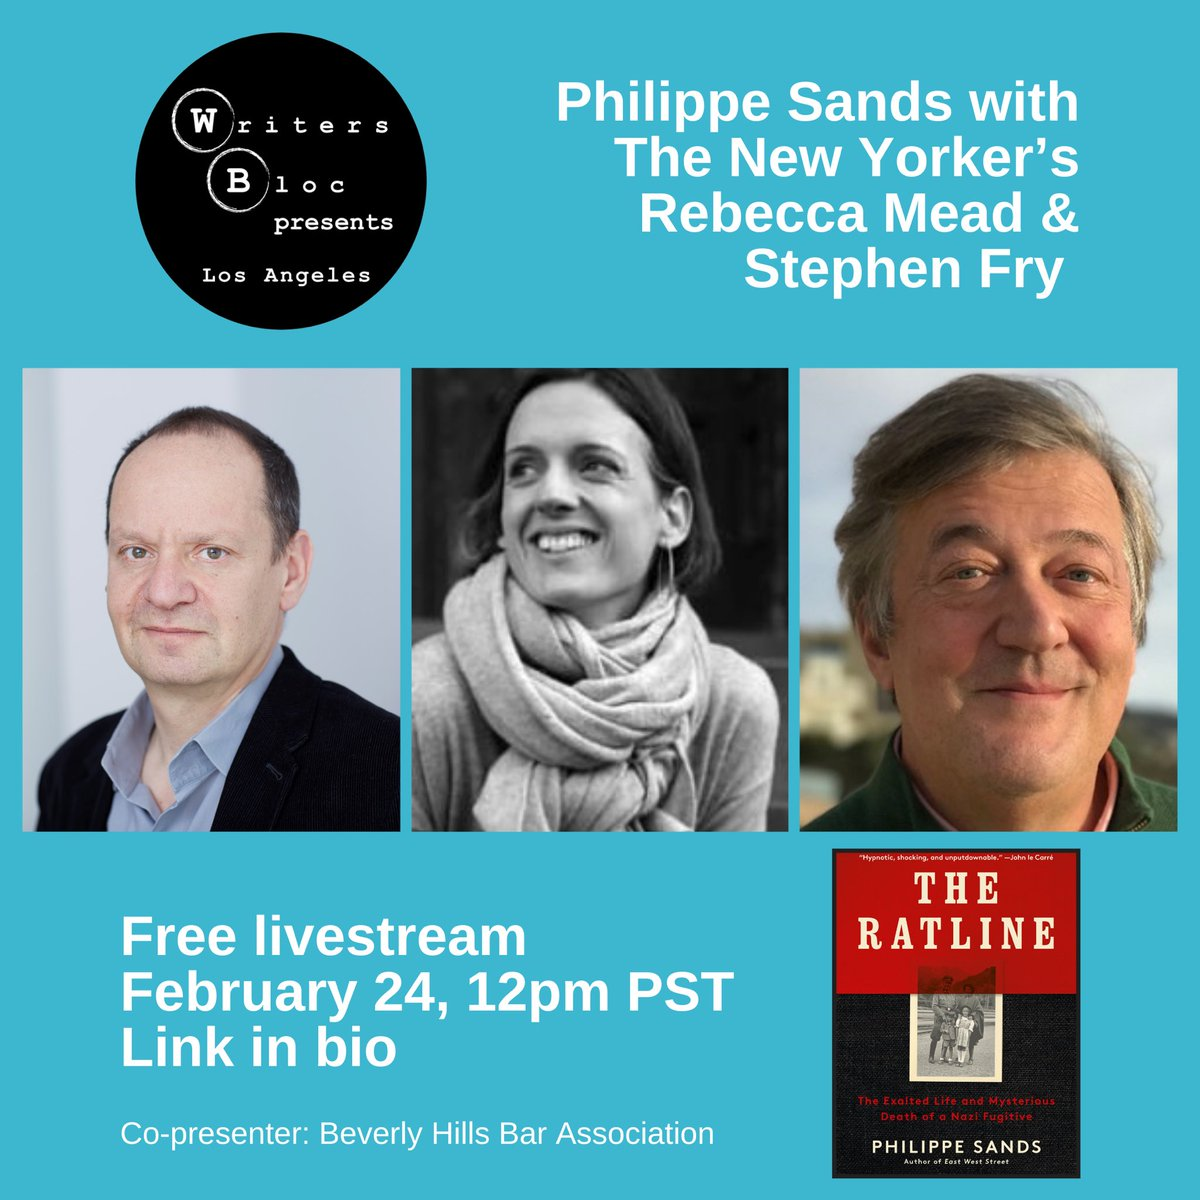 Just announced! Stephen Fry joins @philippesands & @Rebeccamead_NYC for our free livestream event this Weds 2/24 12pm PST. They will discuss Sands' new book, The Ratline. Fry narrates the audiobook version! Join us! @bhba @stephenfry